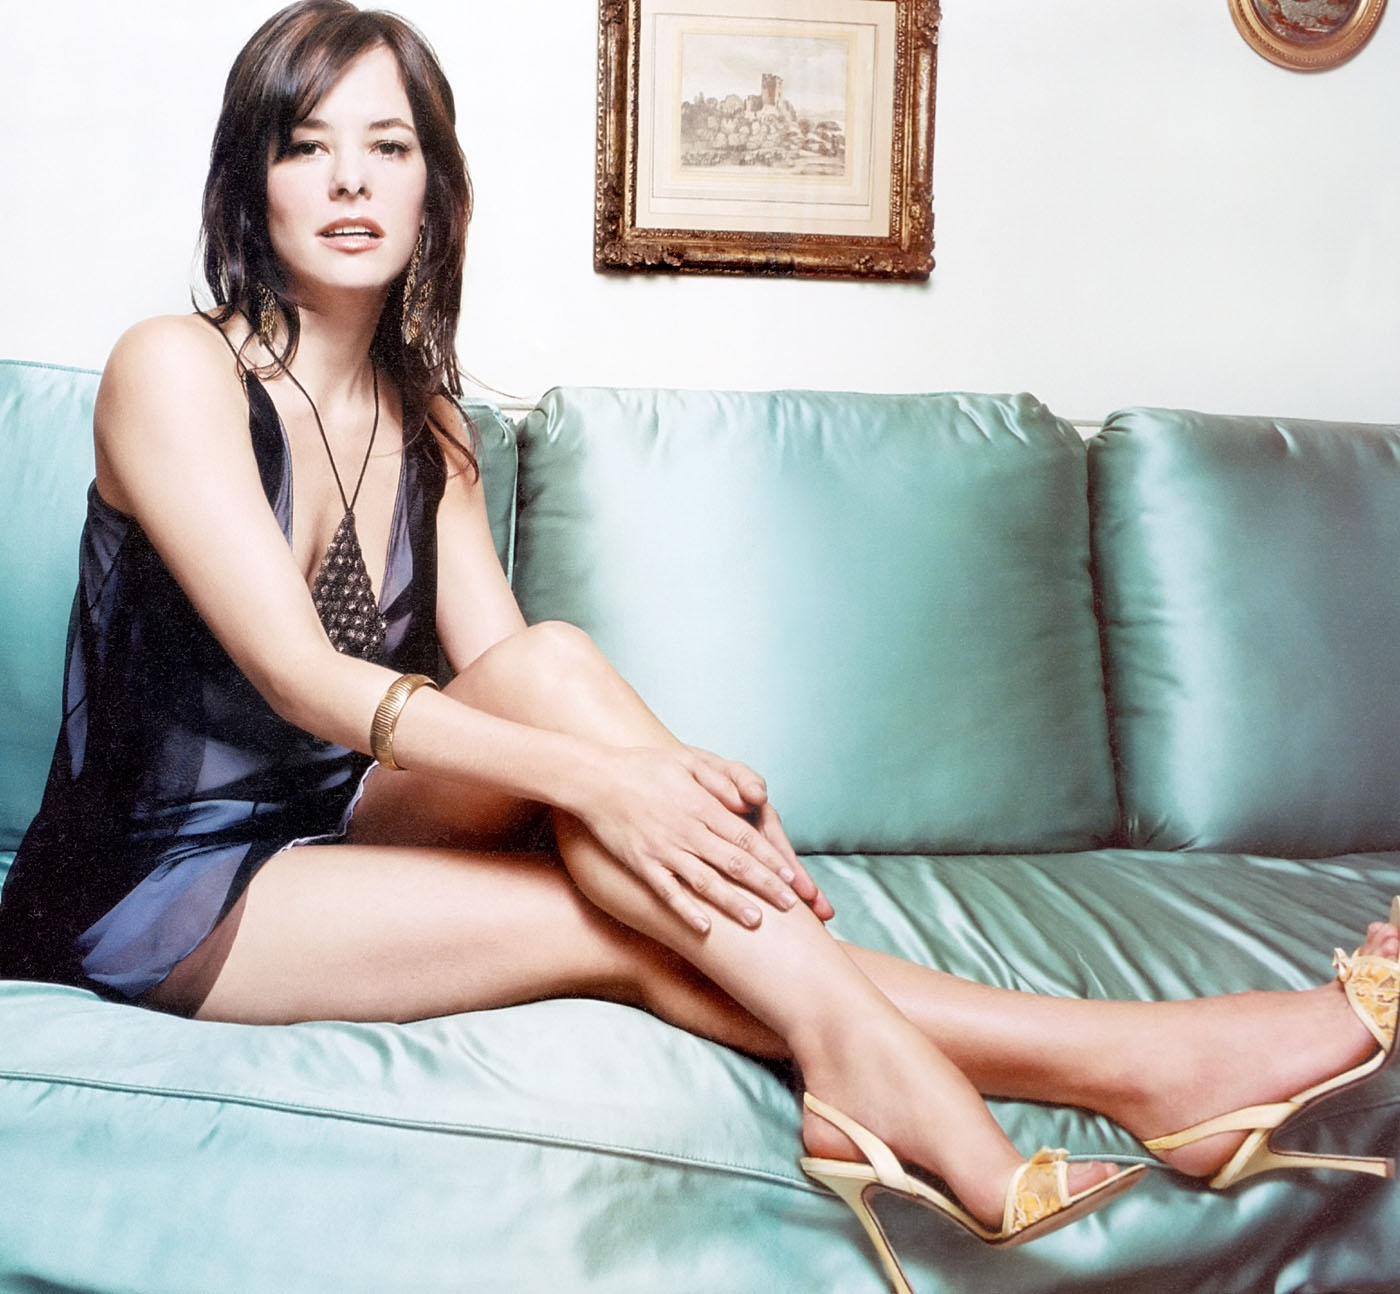 Parker Posey photo #172336